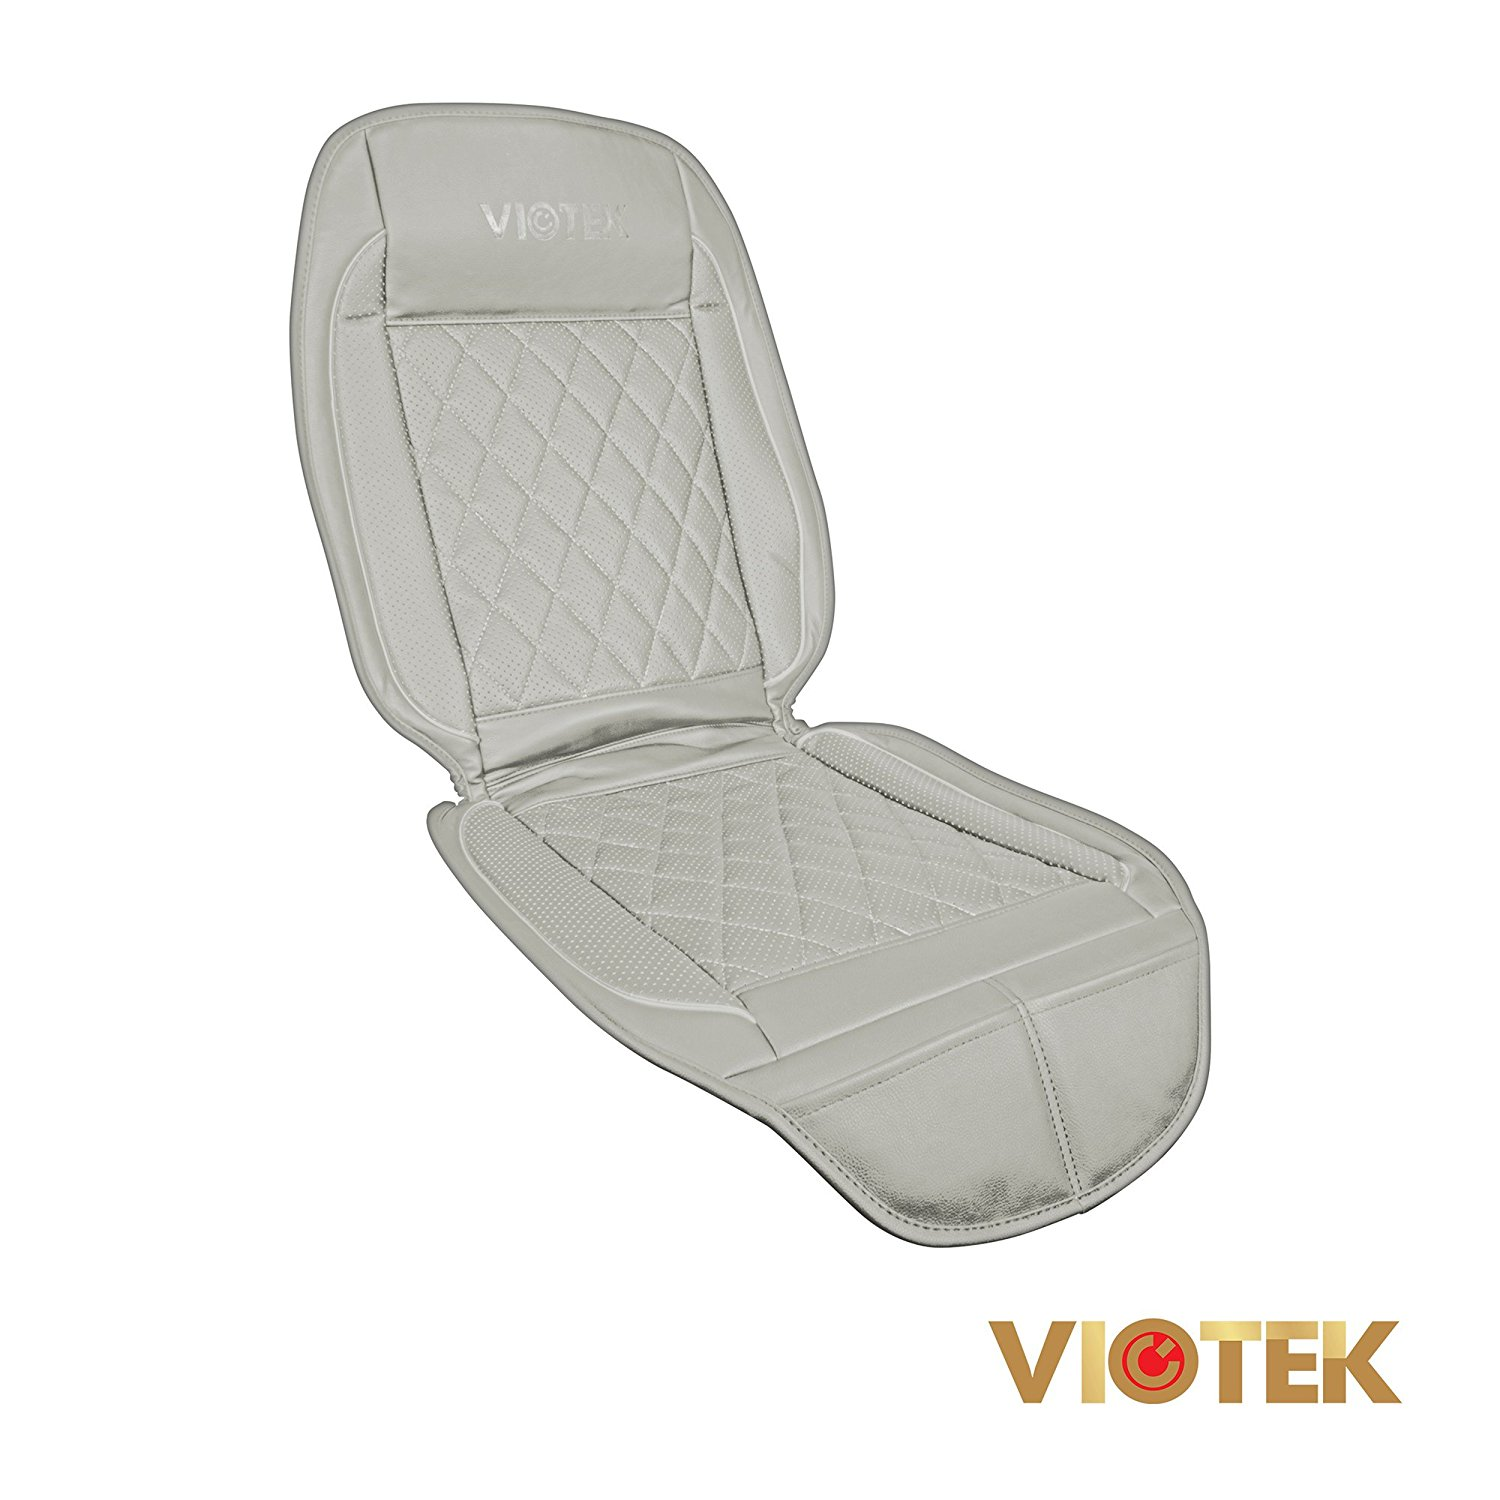 cover chair seat car exercise for seniors viotek tru comfort temperature control cushion system heat cooling v2